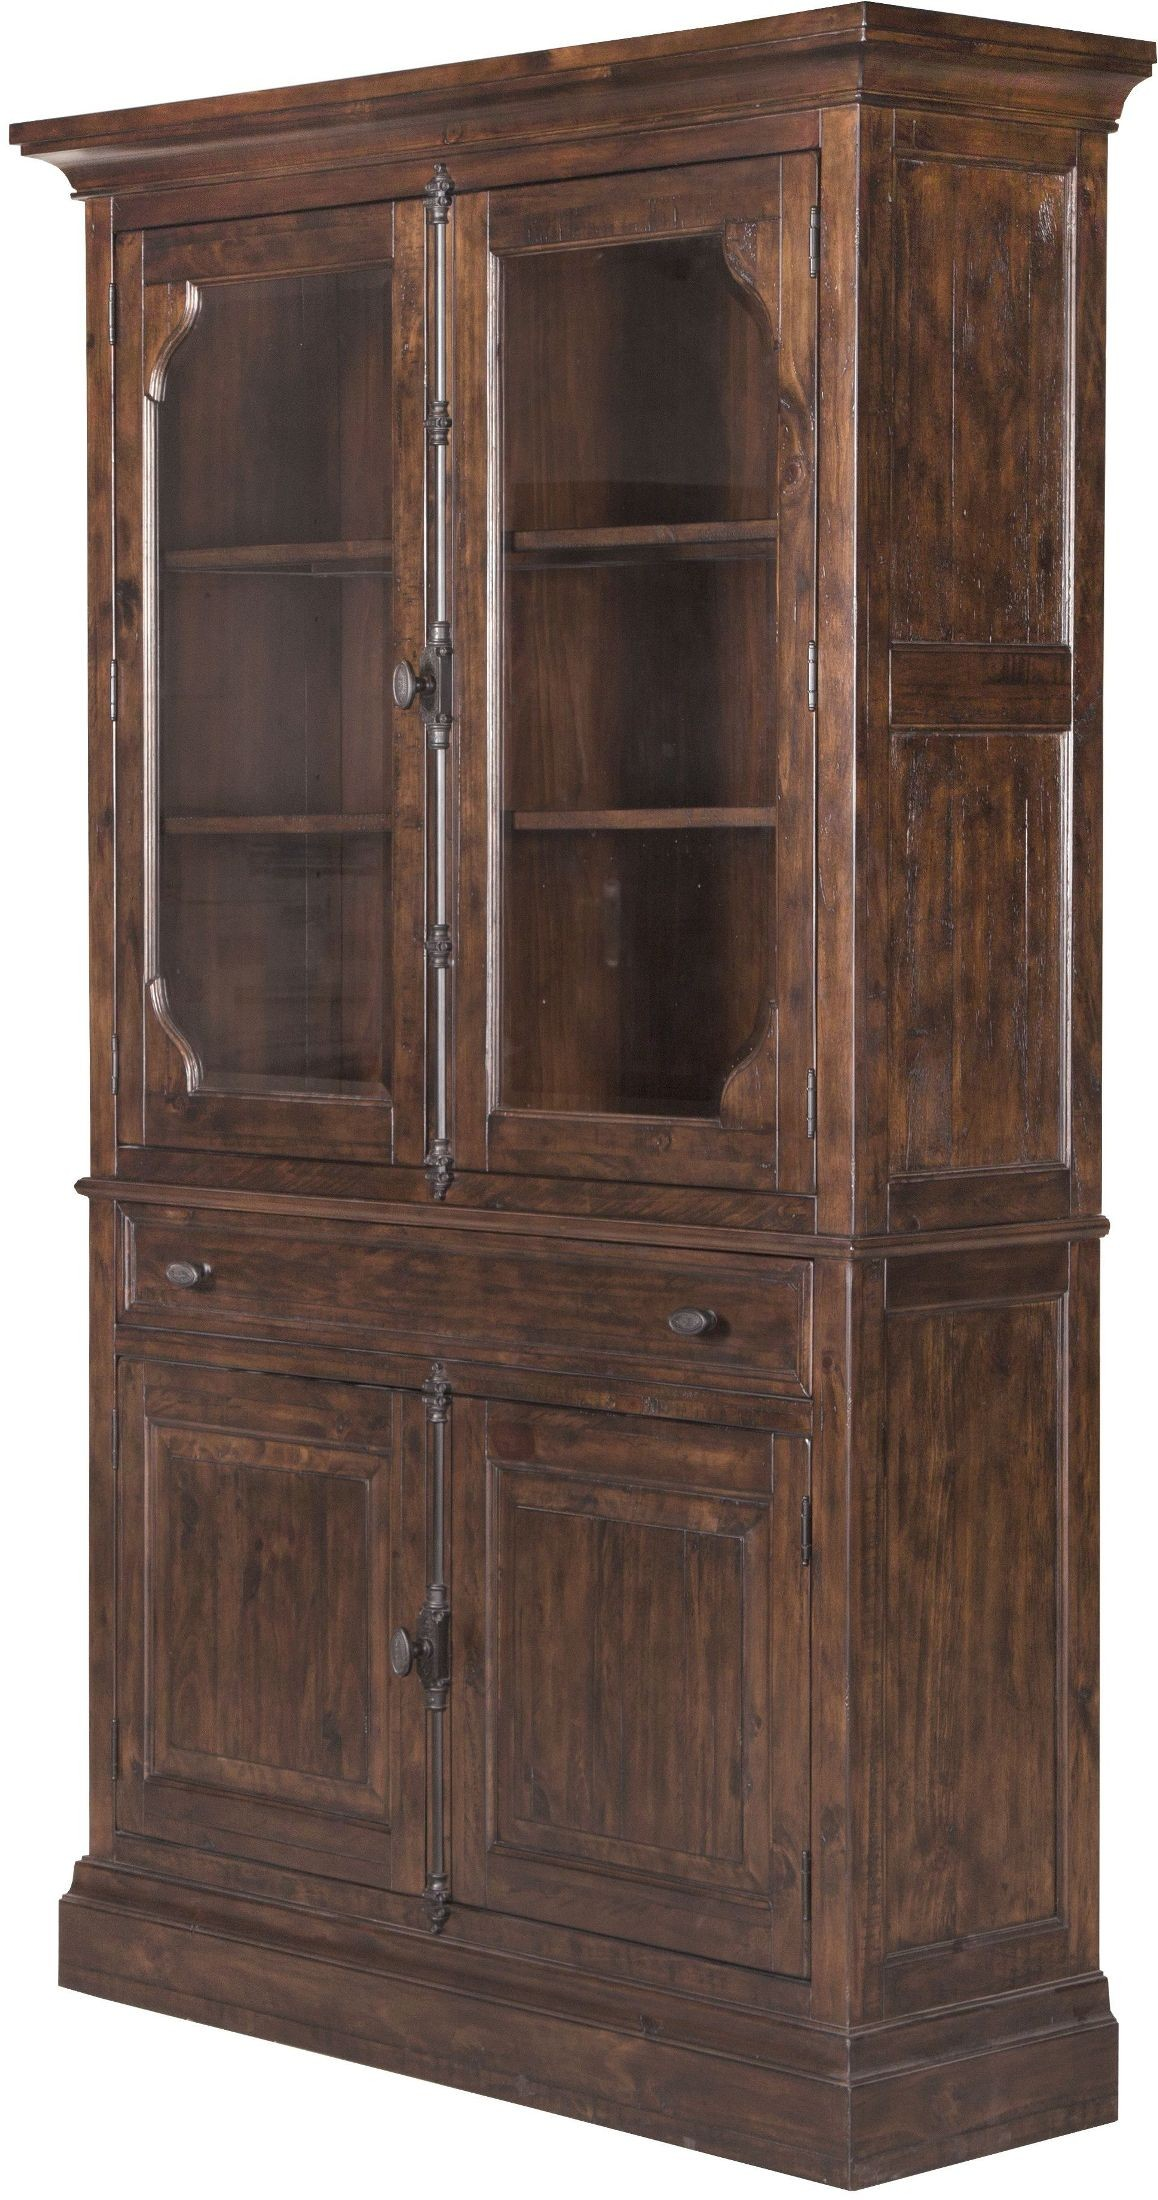 st claire rustic pine curio china cabinet from magnussen. Black Bedroom Furniture Sets. Home Design Ideas